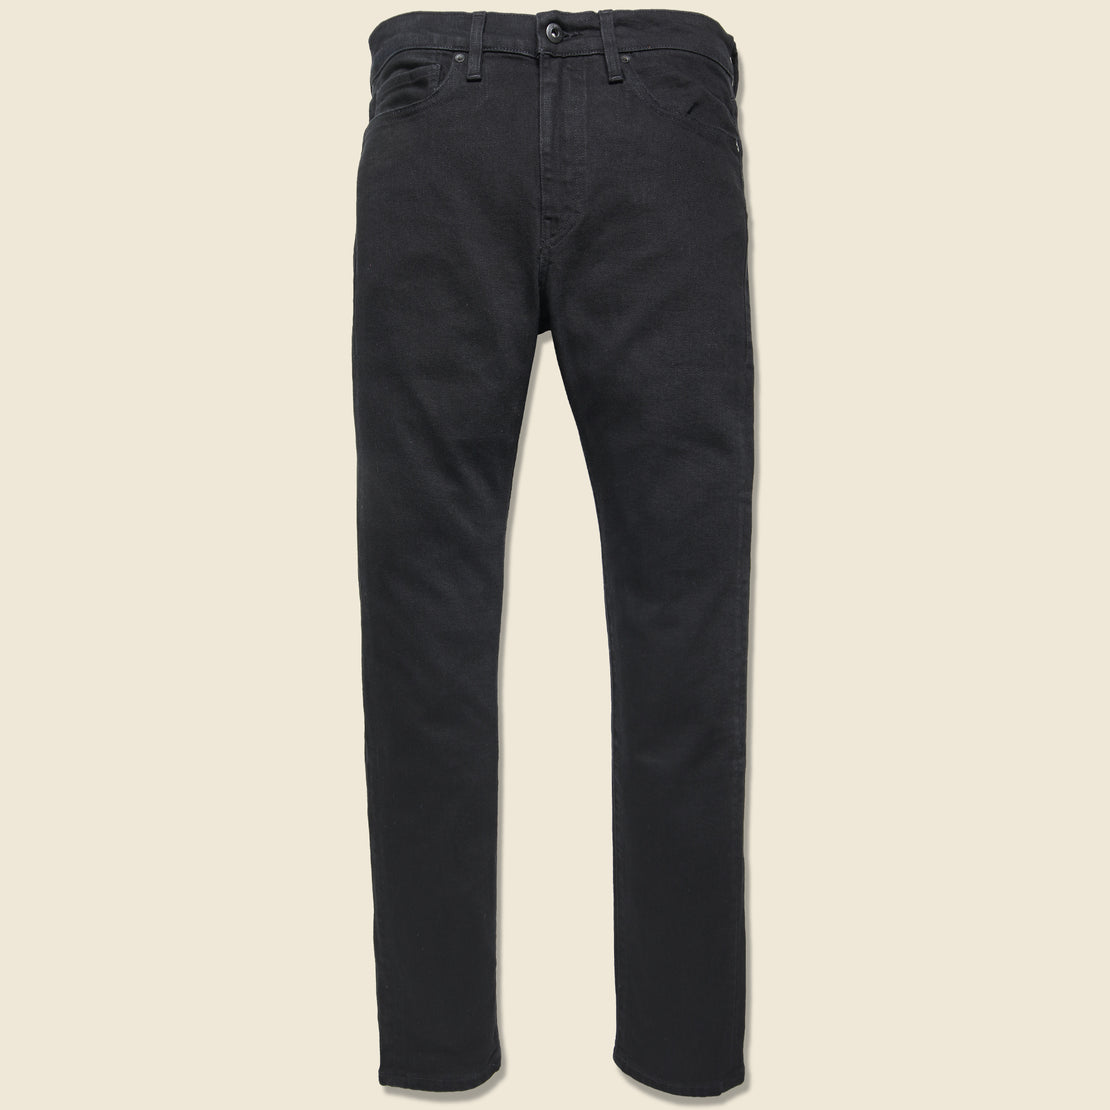 Levis Made & Crafted 510 Jean - Black Rinse